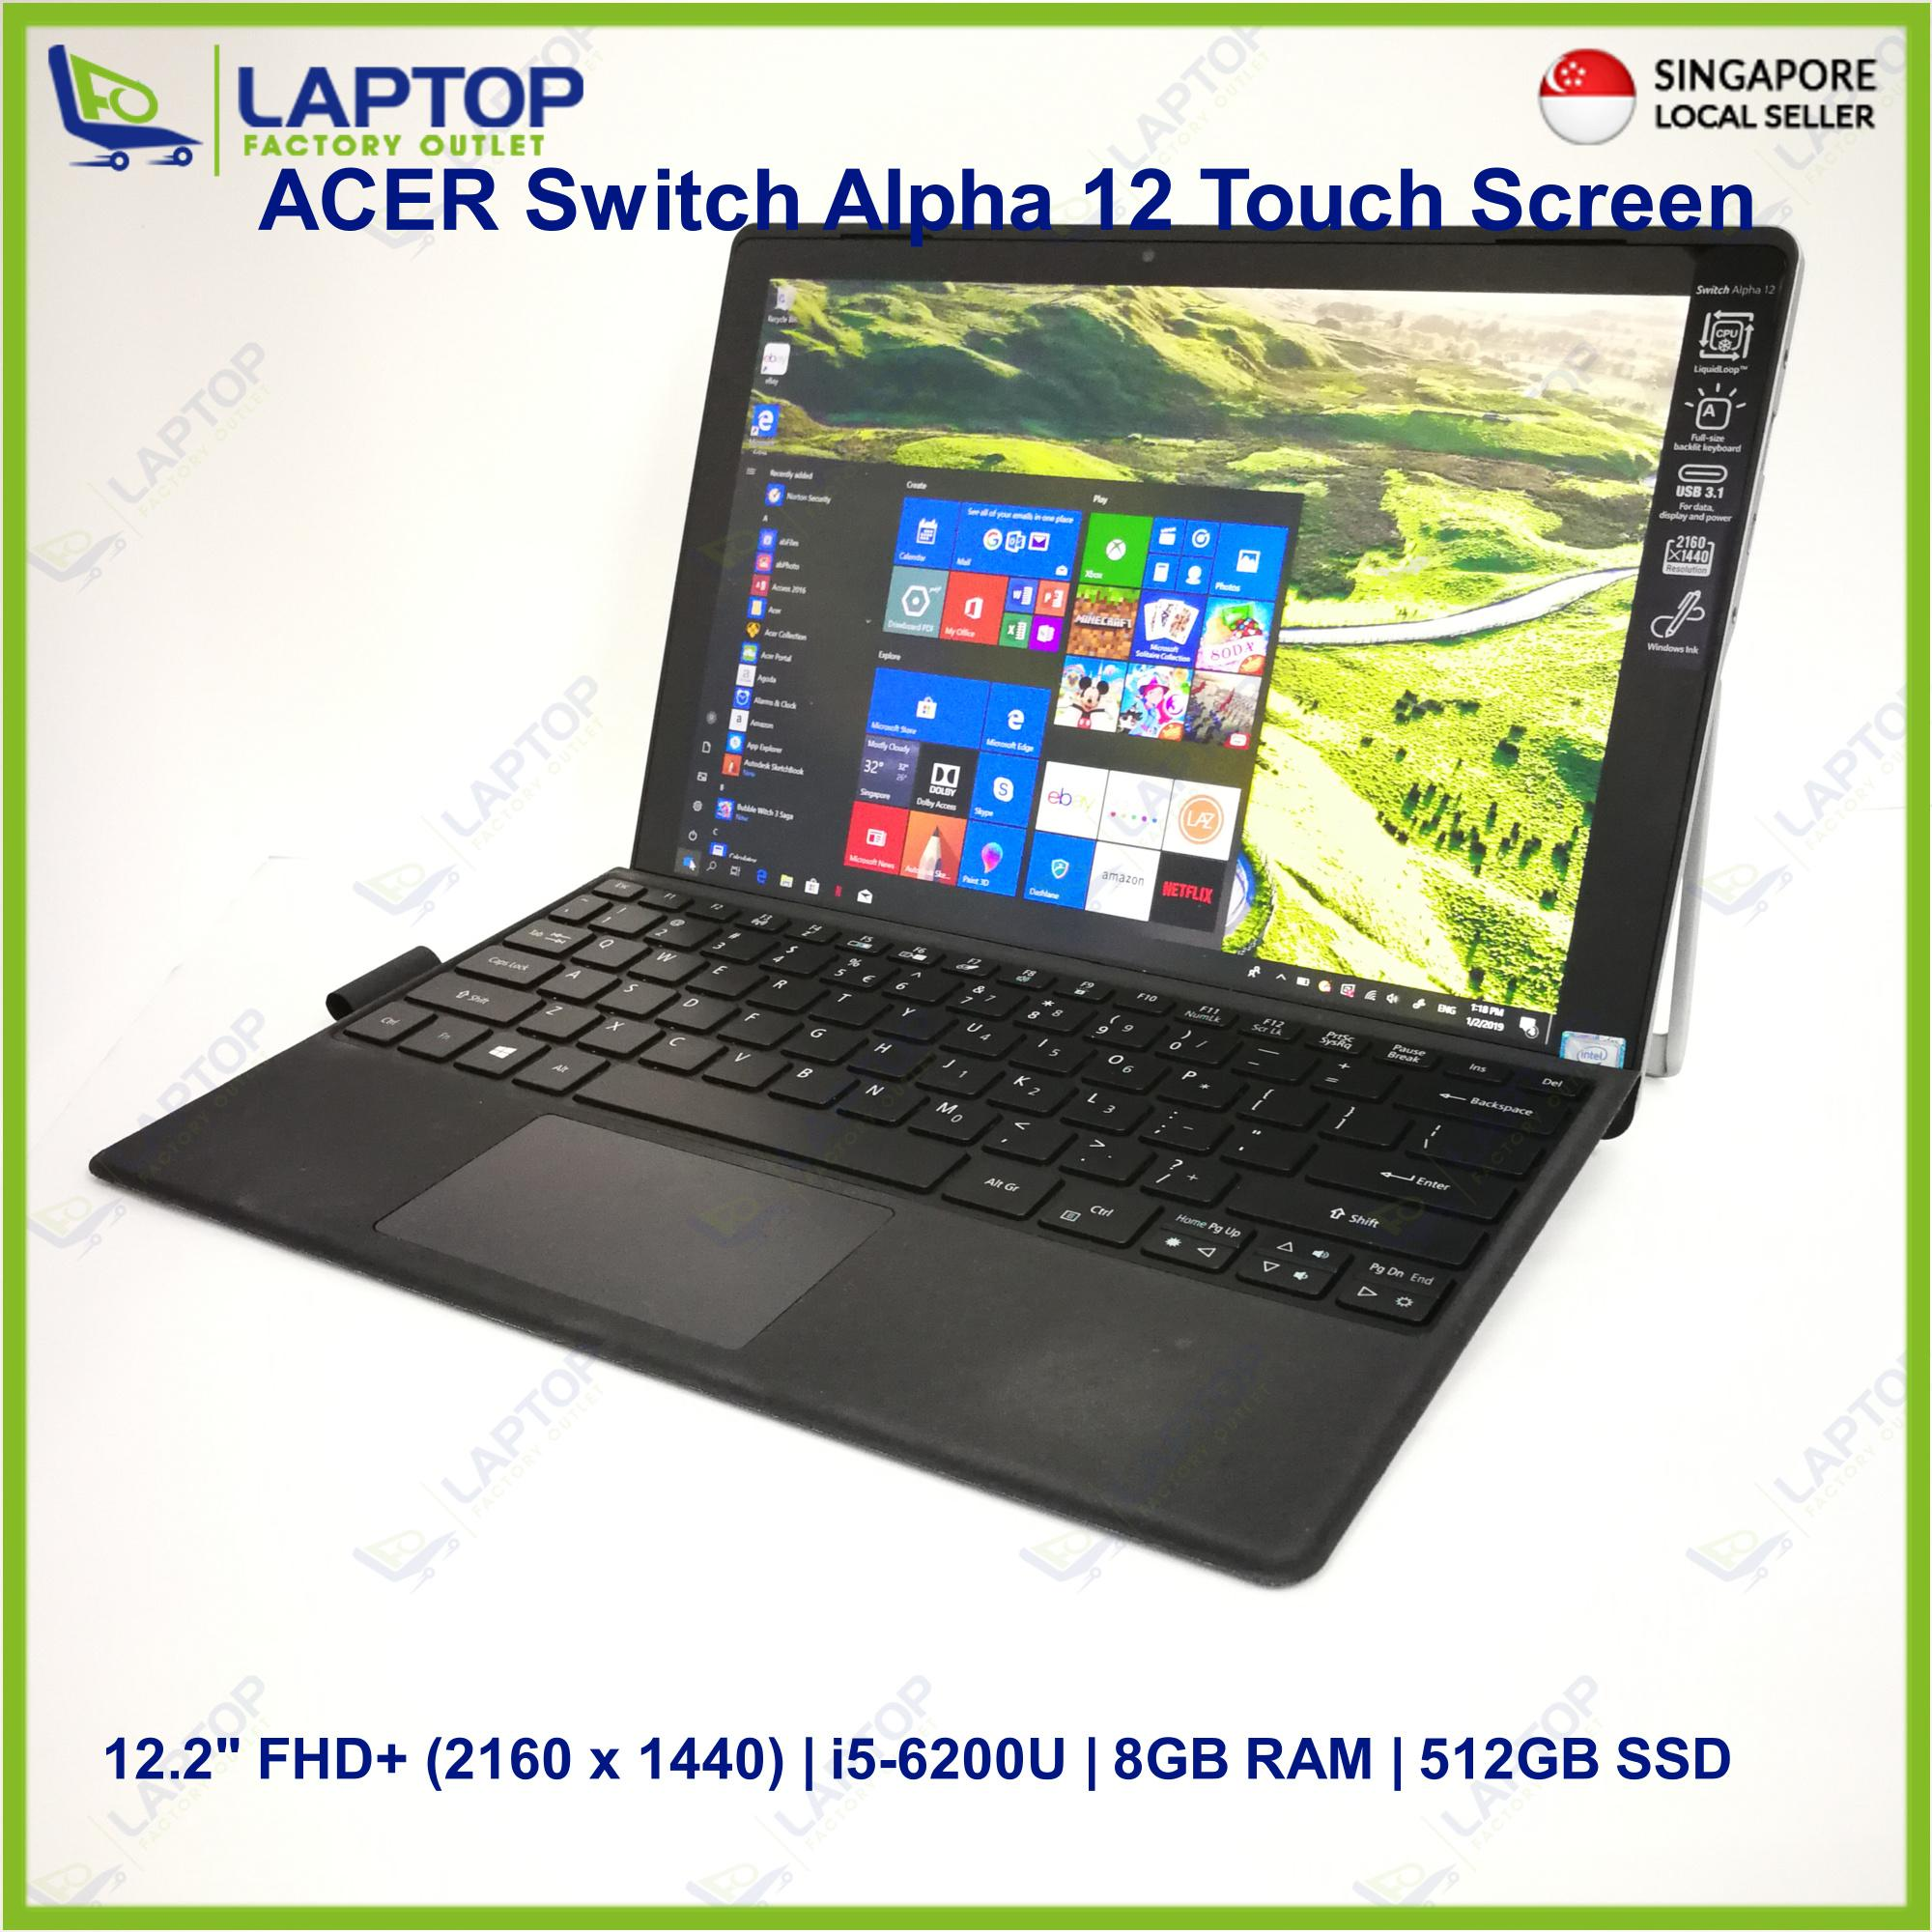 ACER Switch Alpha 12 Touch Screen (i5-6/8GB/512GB) [Premium Preowned]